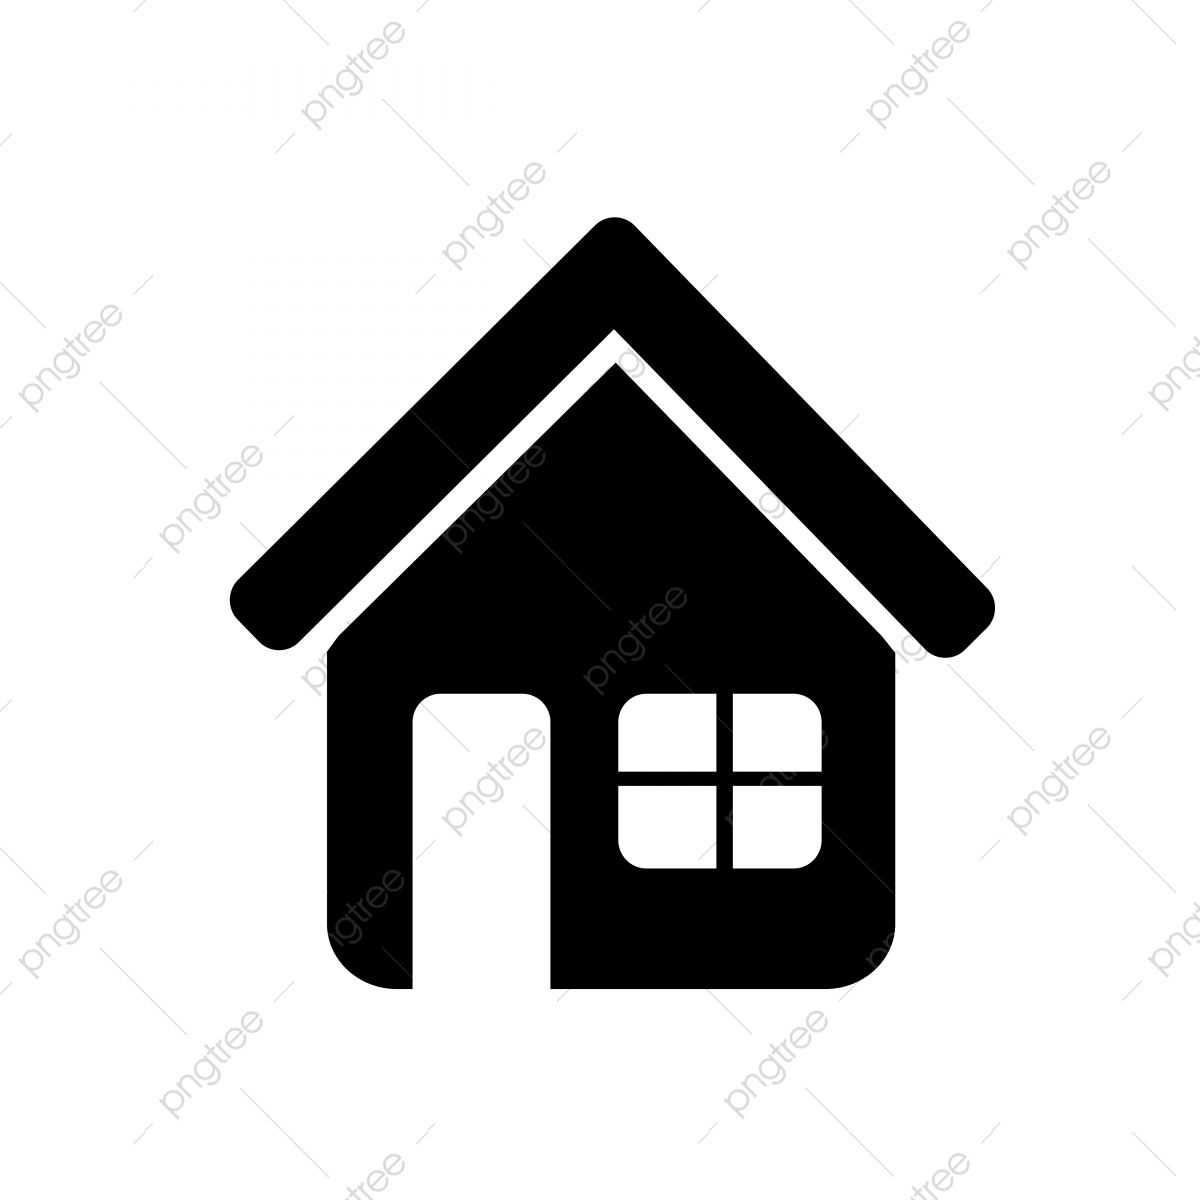 Pin By Sunil Patidar On First Home Icon Location Icon Business Icon